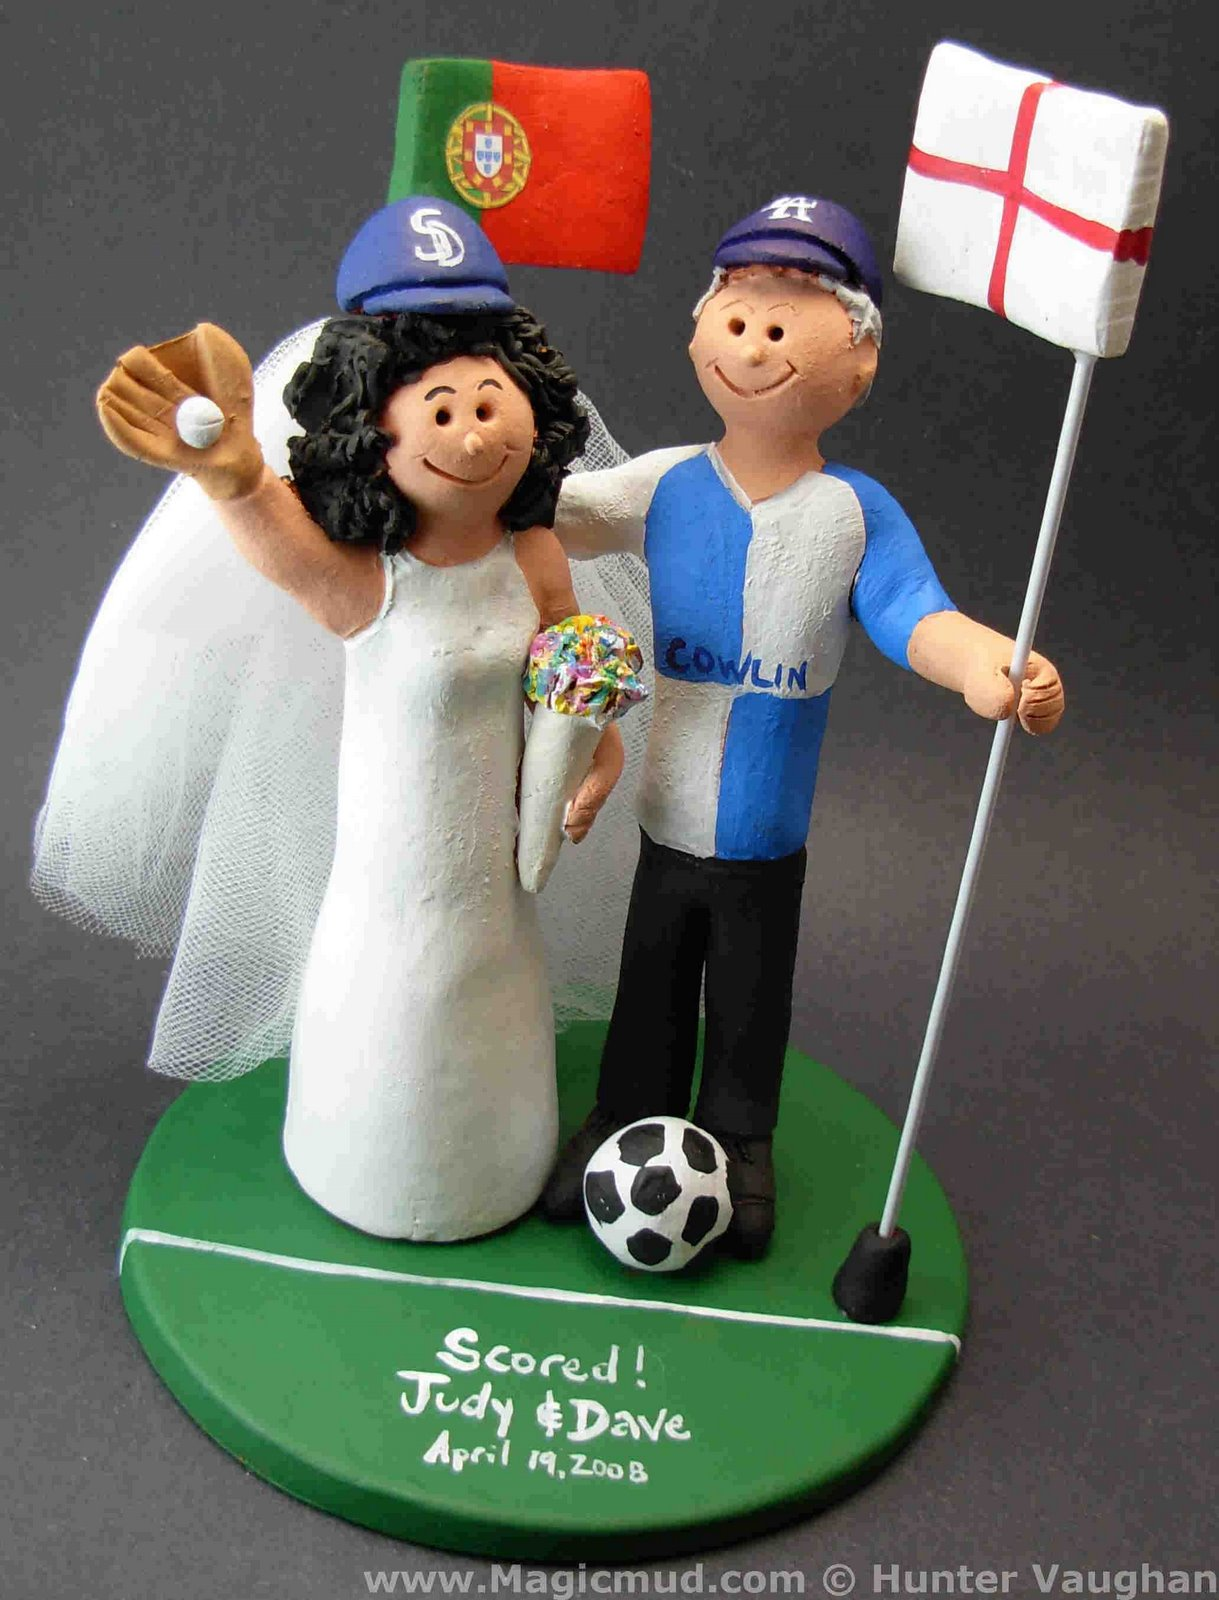 wedding cake topper of the daybristol rovers soccer fan